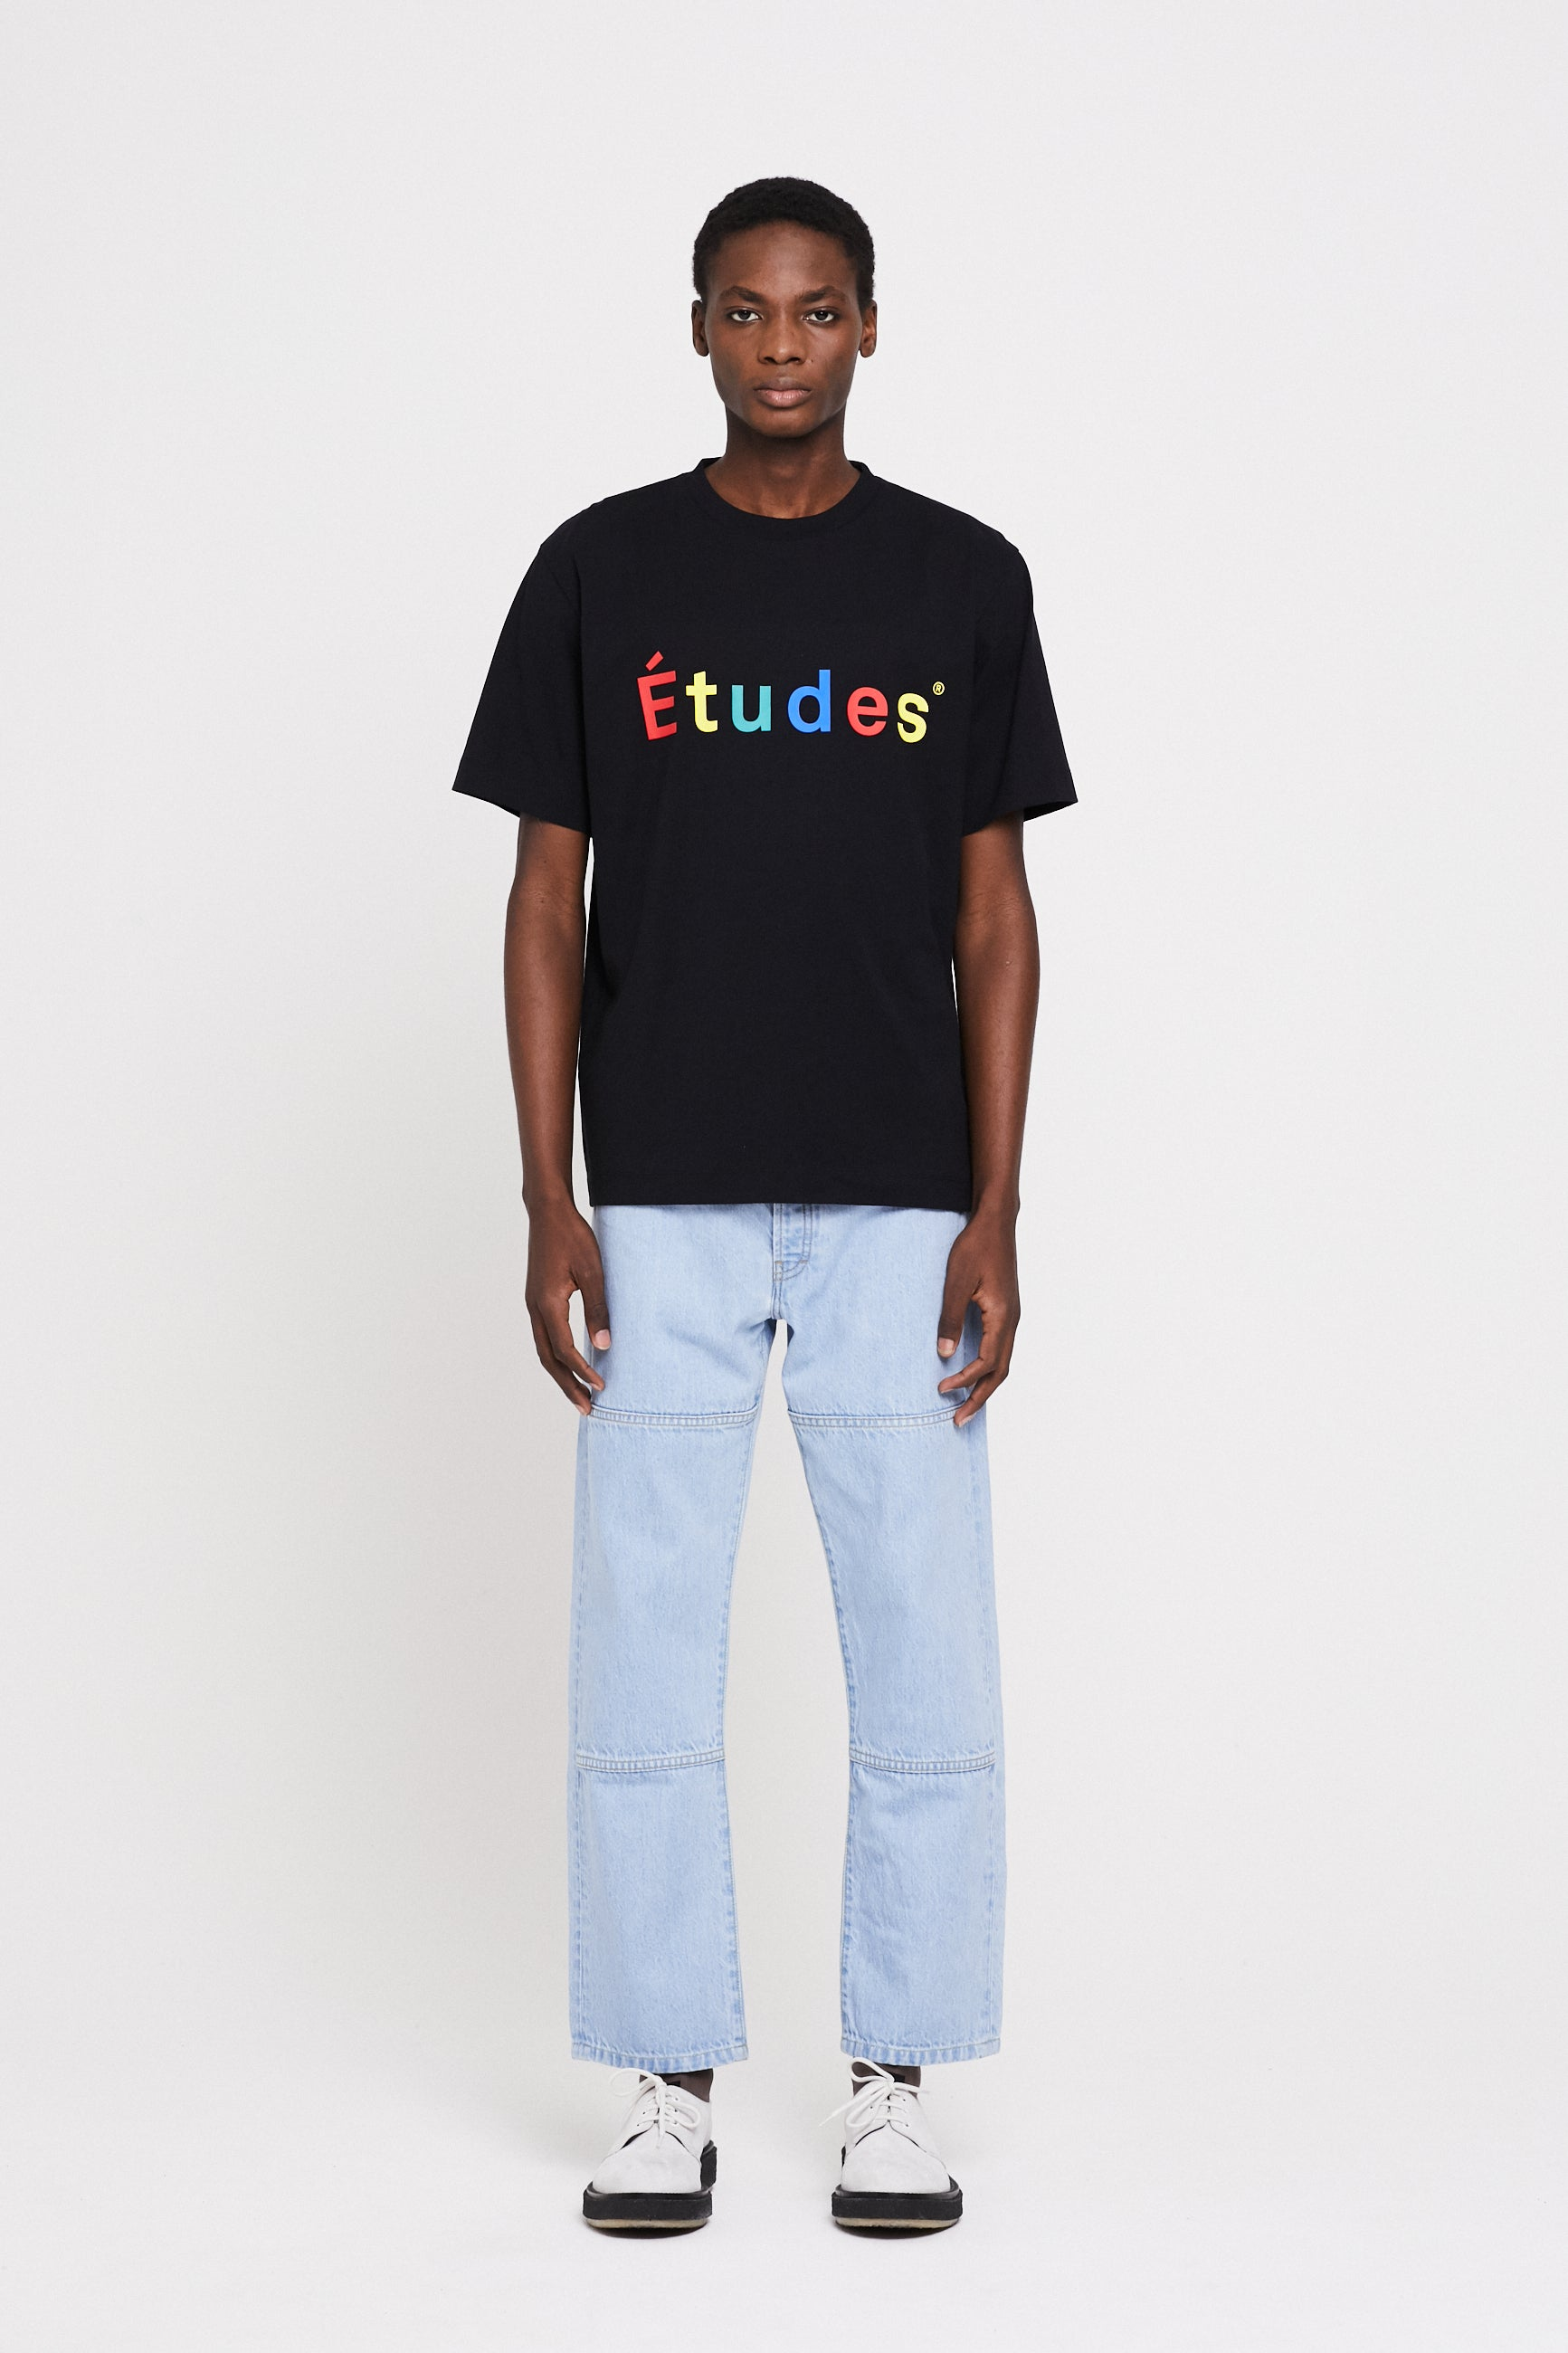 Études Wonder Multico Études Black T-Shirt 1